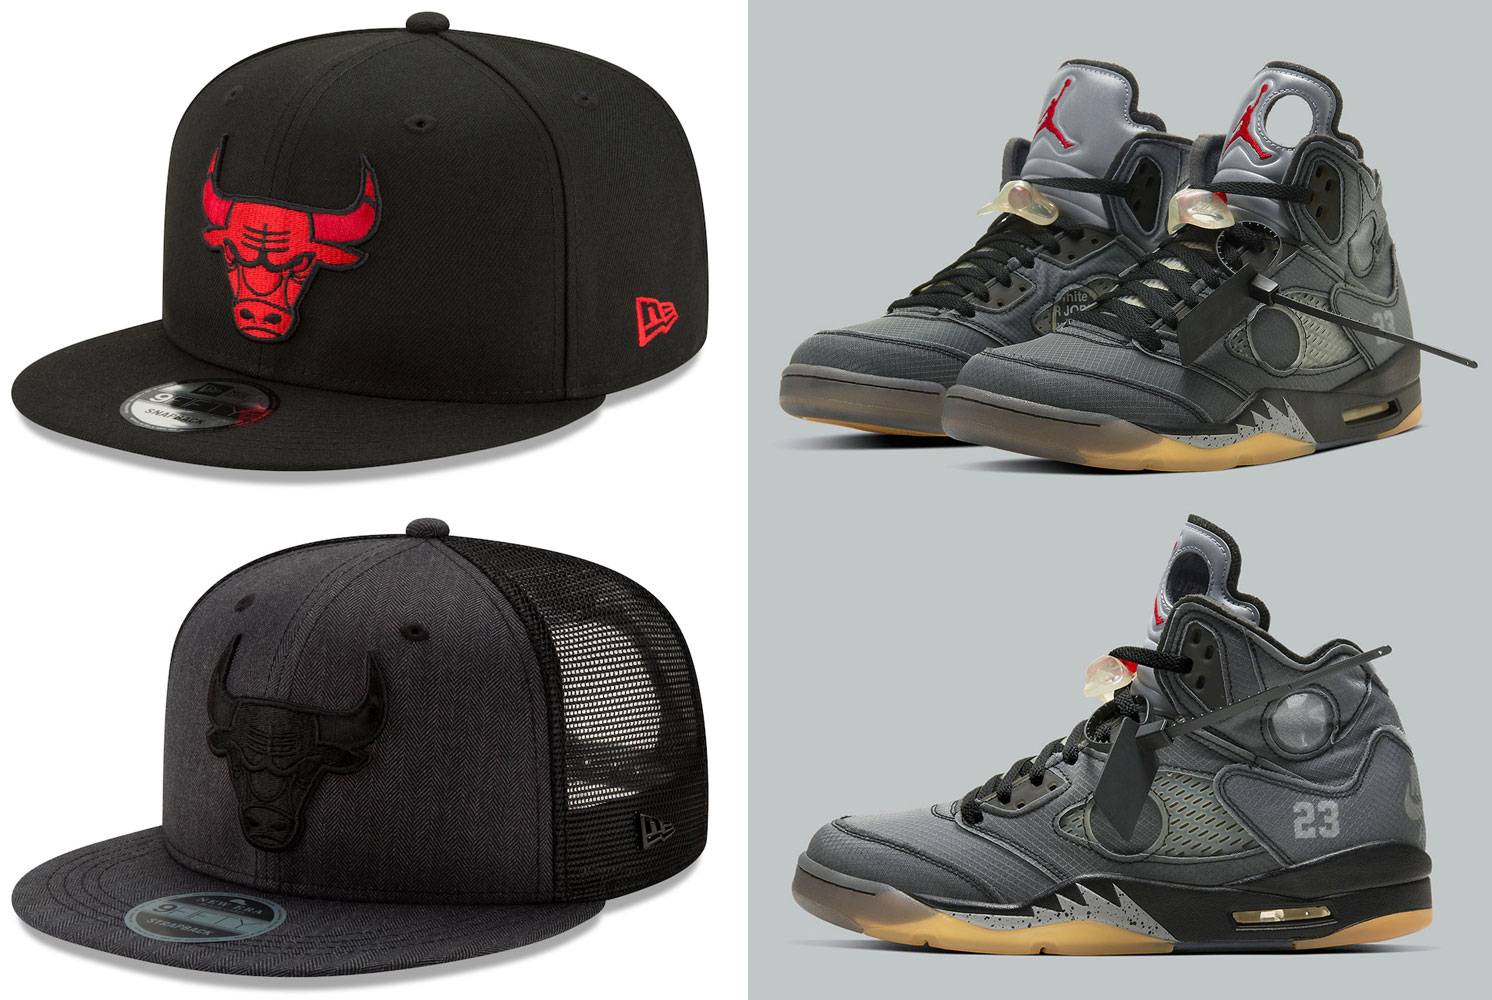 off-white-air-jordan-5-hats-to-match